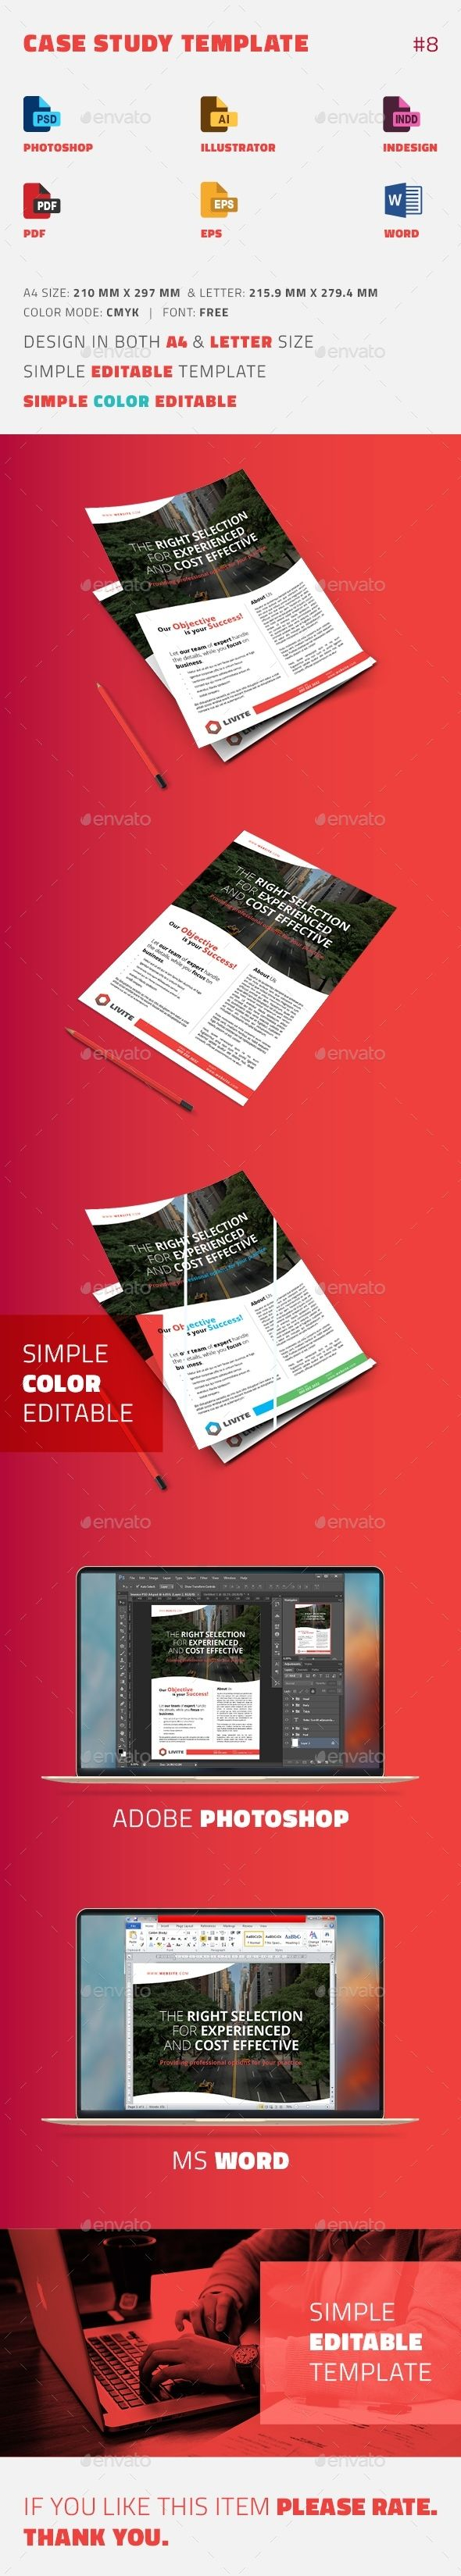 9 best Case Study Templates images on Pinterest | Page layout, Case ...